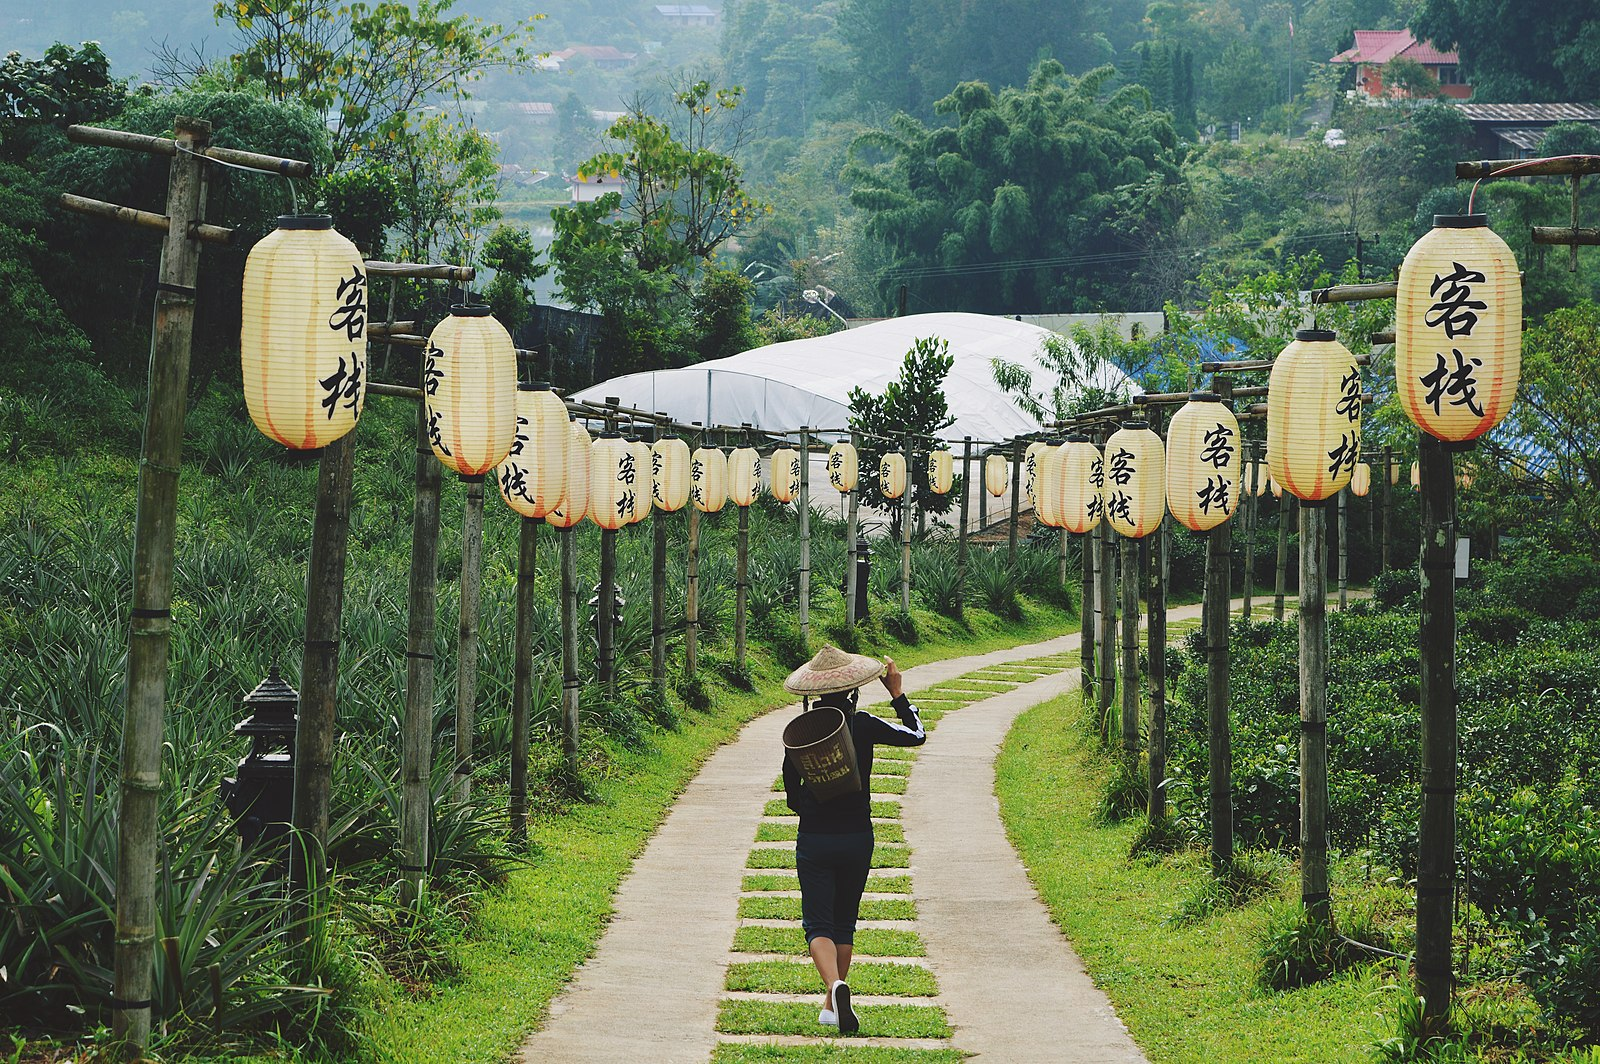 Exploring Mae Hong Son, the lesser-known mountainous province in northern Thailand